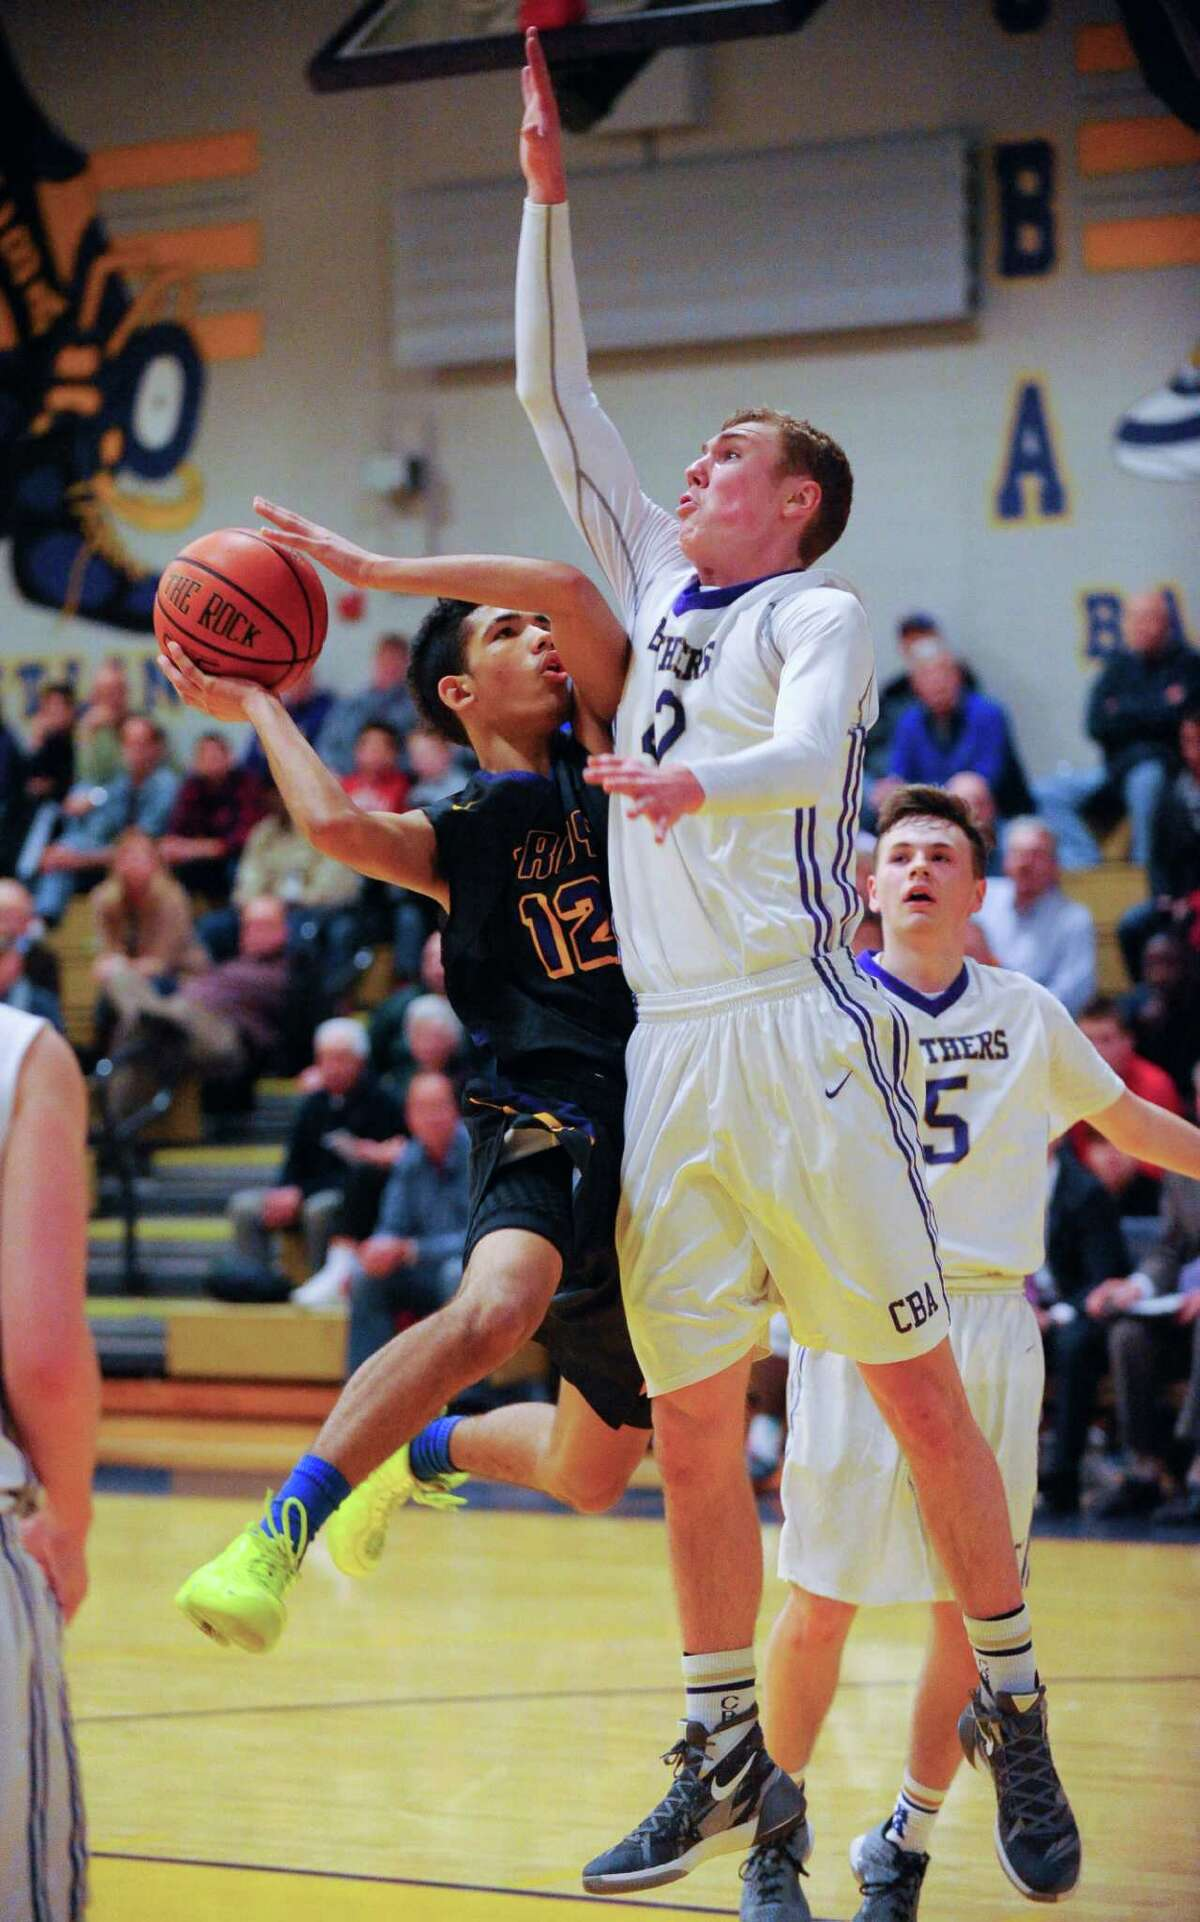 Troy's Daniel Buie (12) is fouled by Christian Brothers Academy's Scott Trobridge (42) during the first half of their boys' high school basketball game on Thursday, Dec. 18, 2015, in Colonie, N.Y. (Hans Pennink / Special to the Times Union) ORG XMIT: HP103